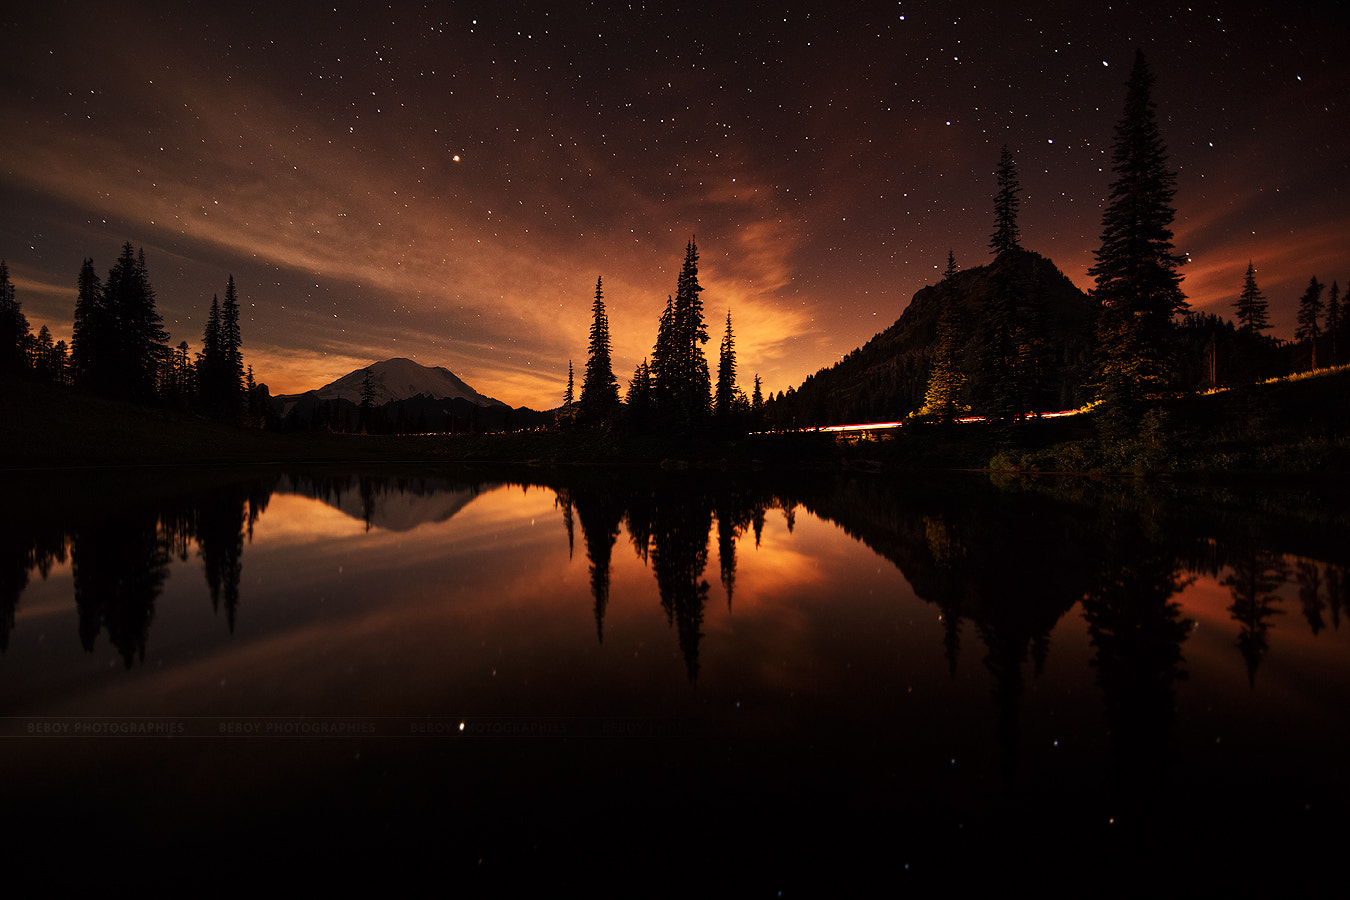 Photograph Midnight sunset by Beboy Photographies on 500px